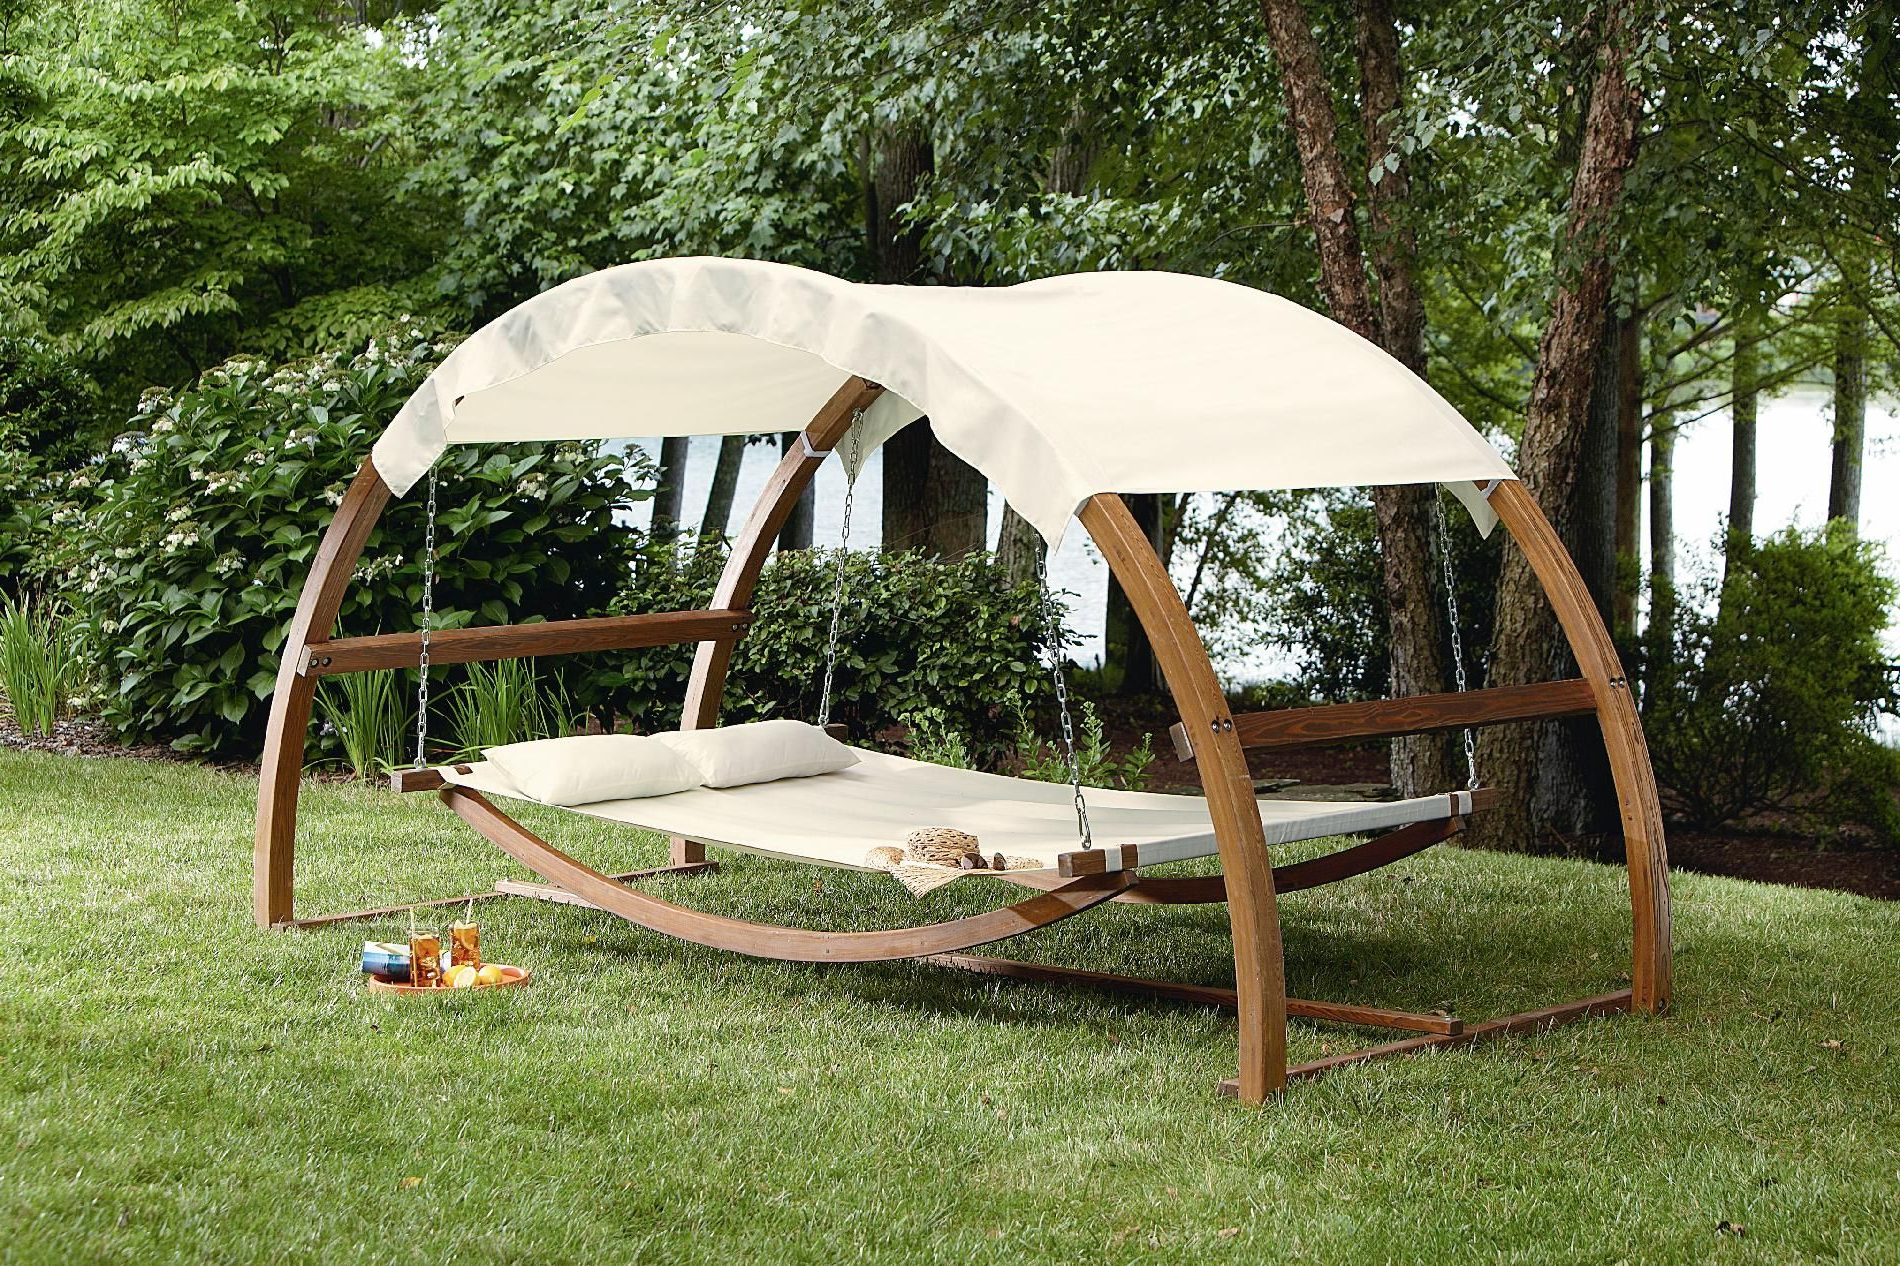 Garden Leisure Outdoor Hammock Patio Canopy Rocking Chairs Throughout Popular I Would Never Come In The House!! Garden Oasis Arch Swing (View 9 of 25)